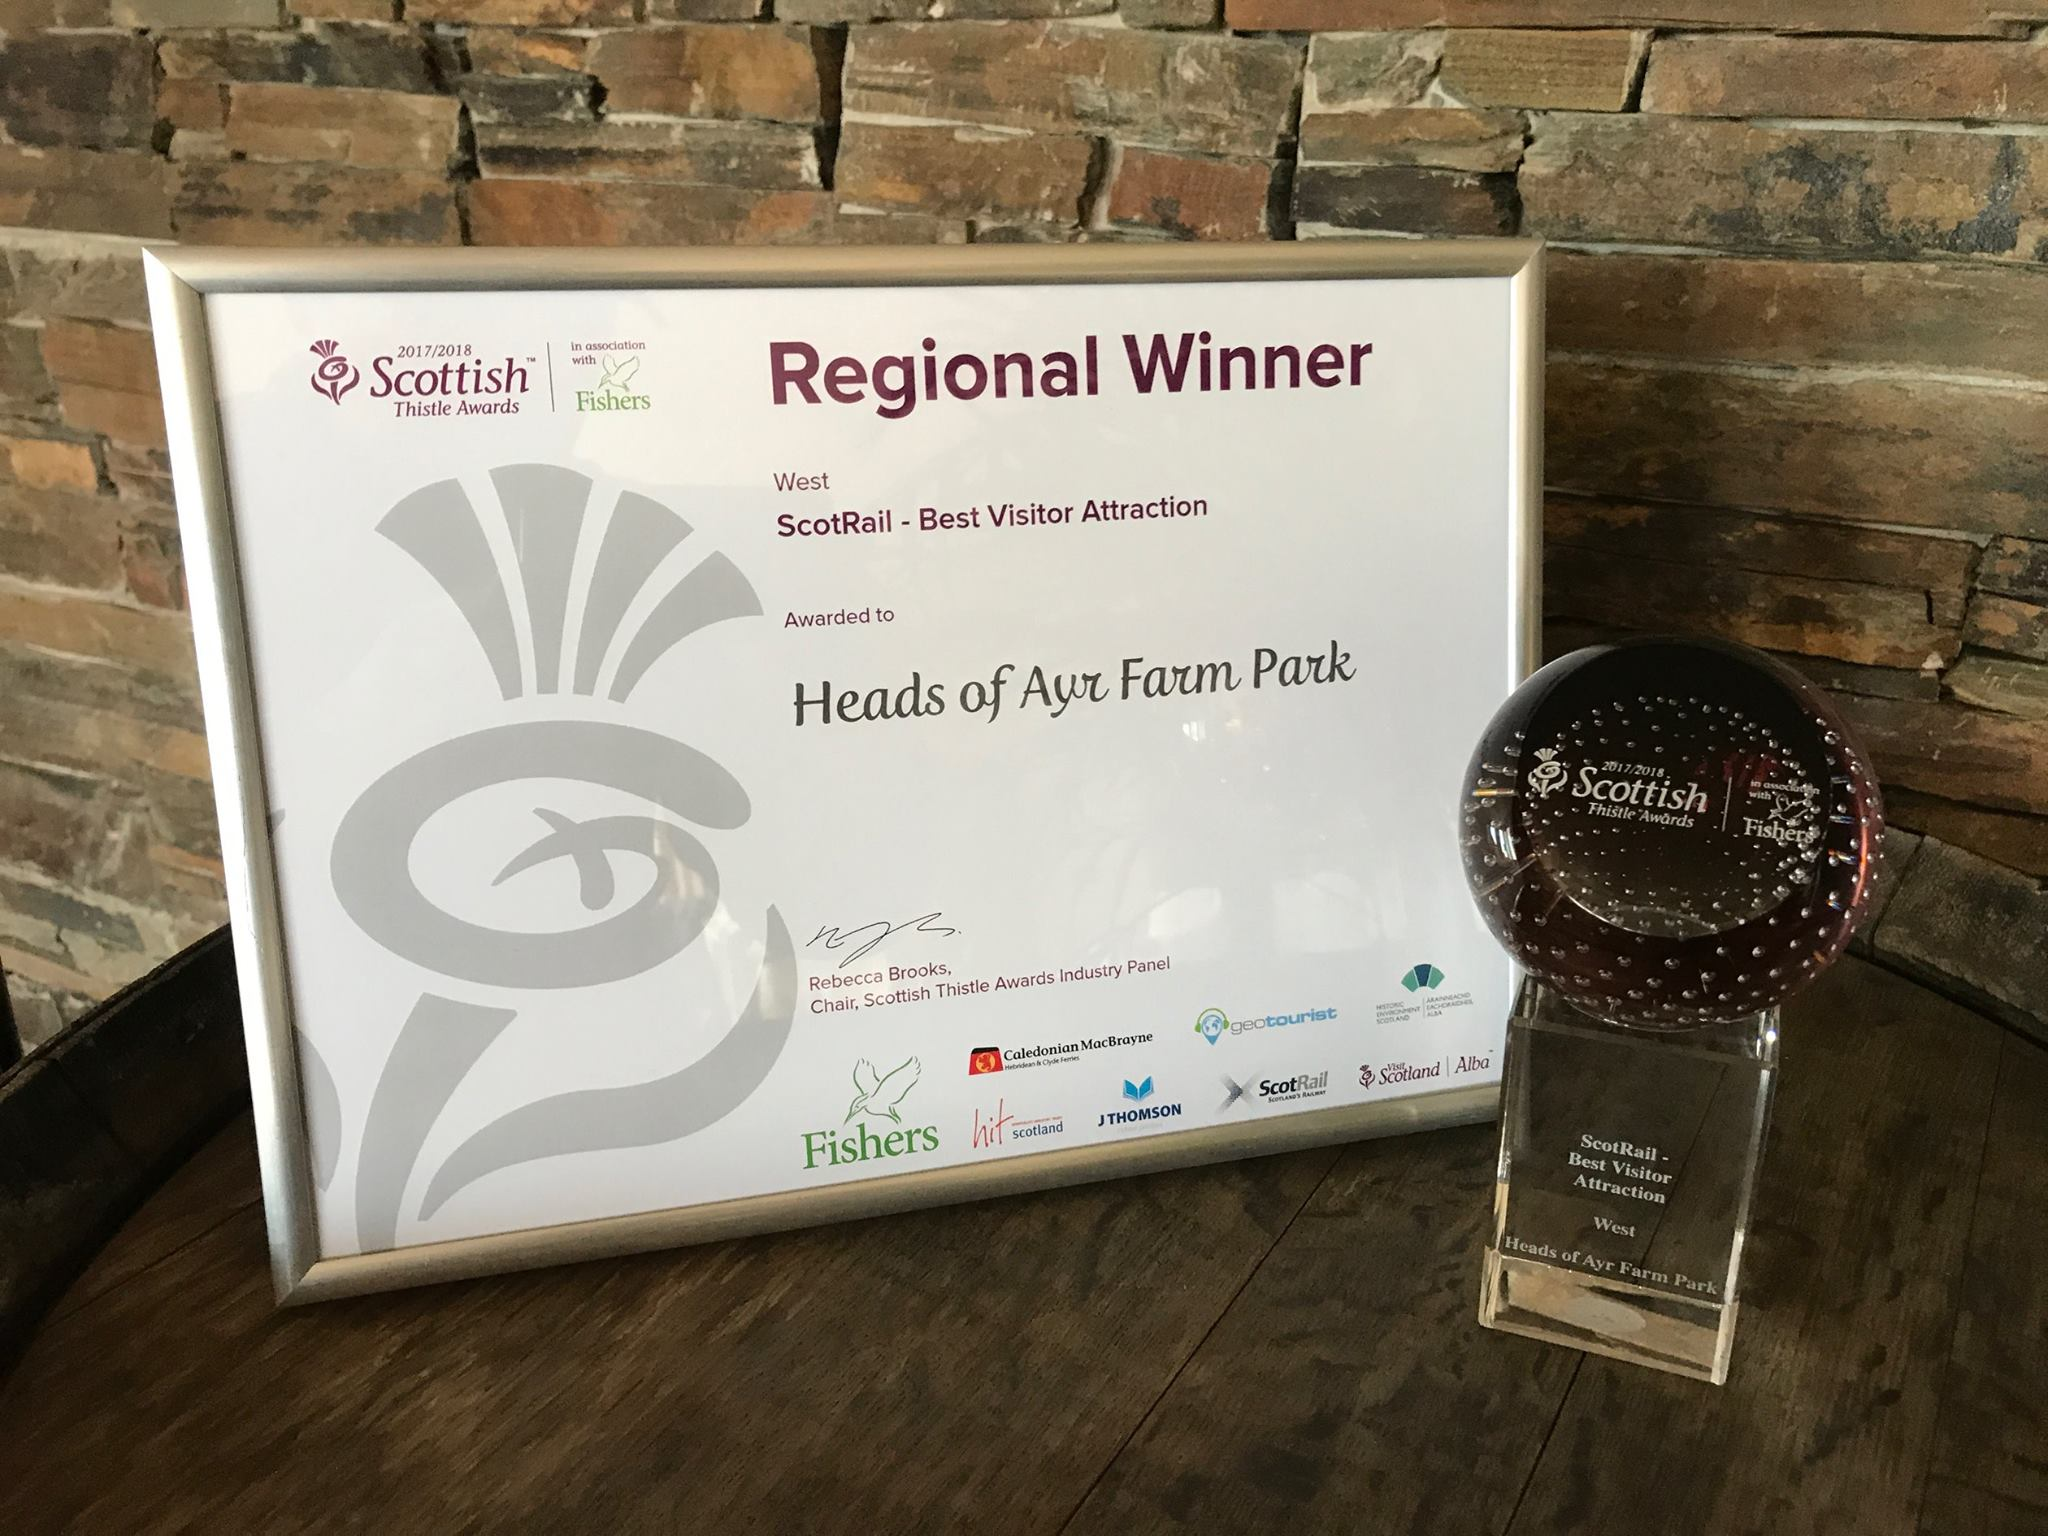 Heads of Ayr Farm Park award